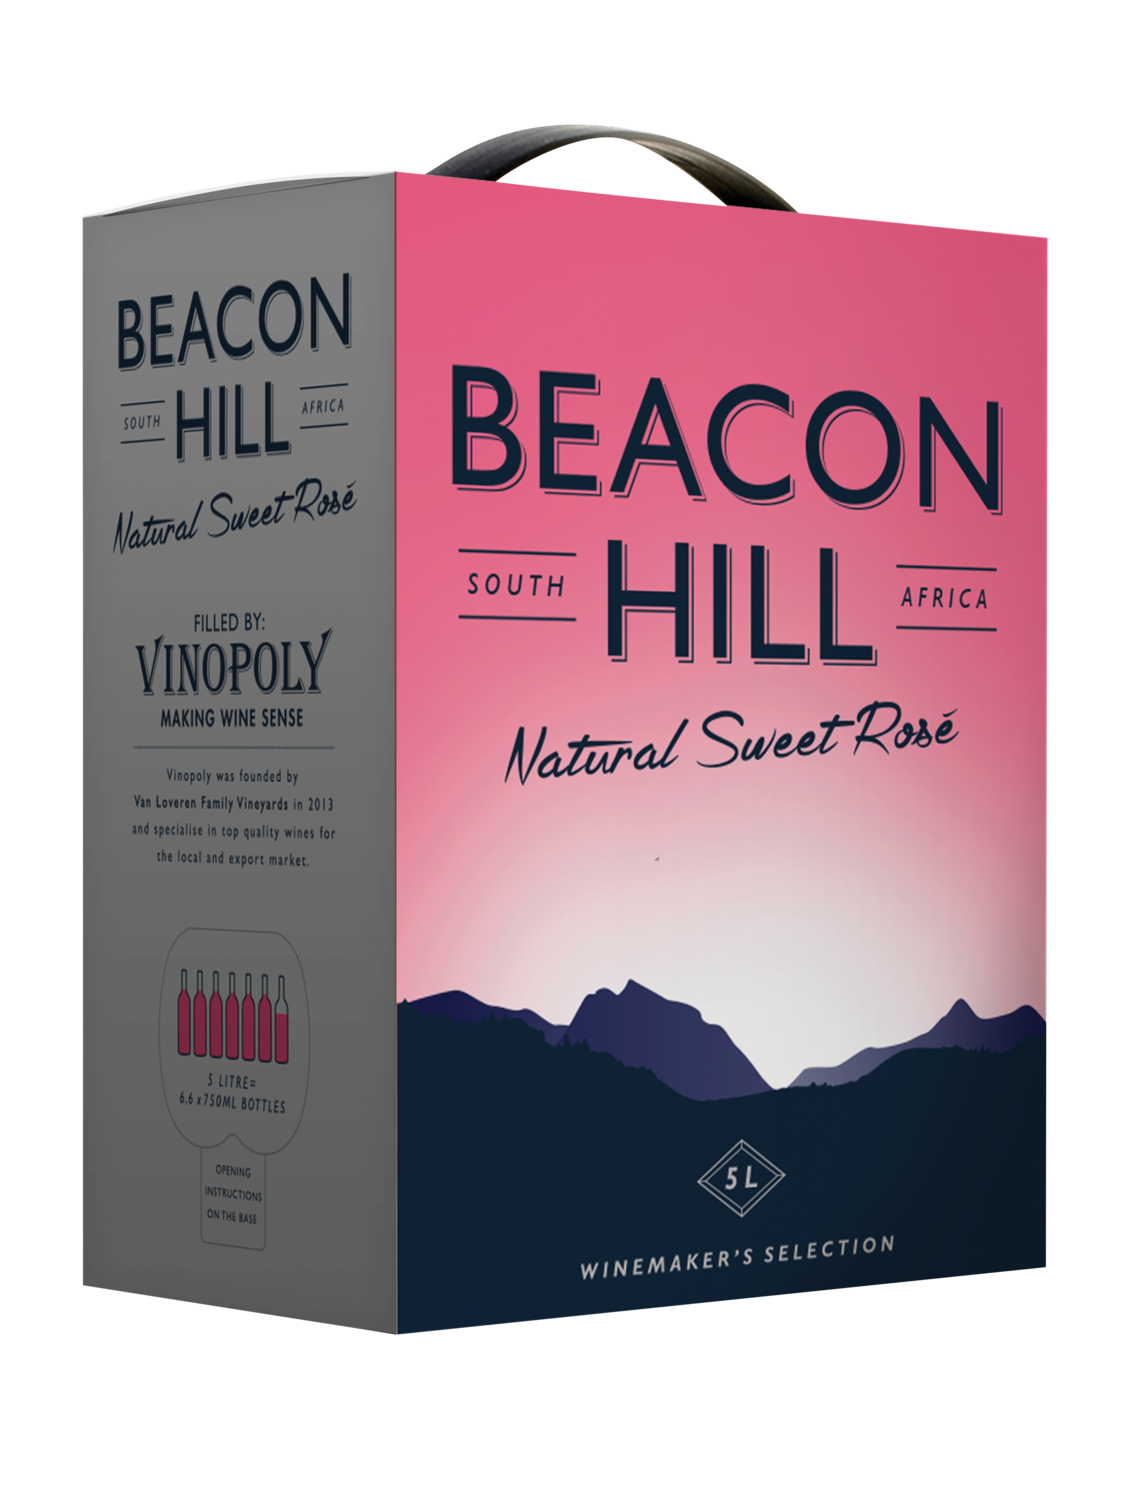 BEACON HILL NATURAL SWEET ROSE